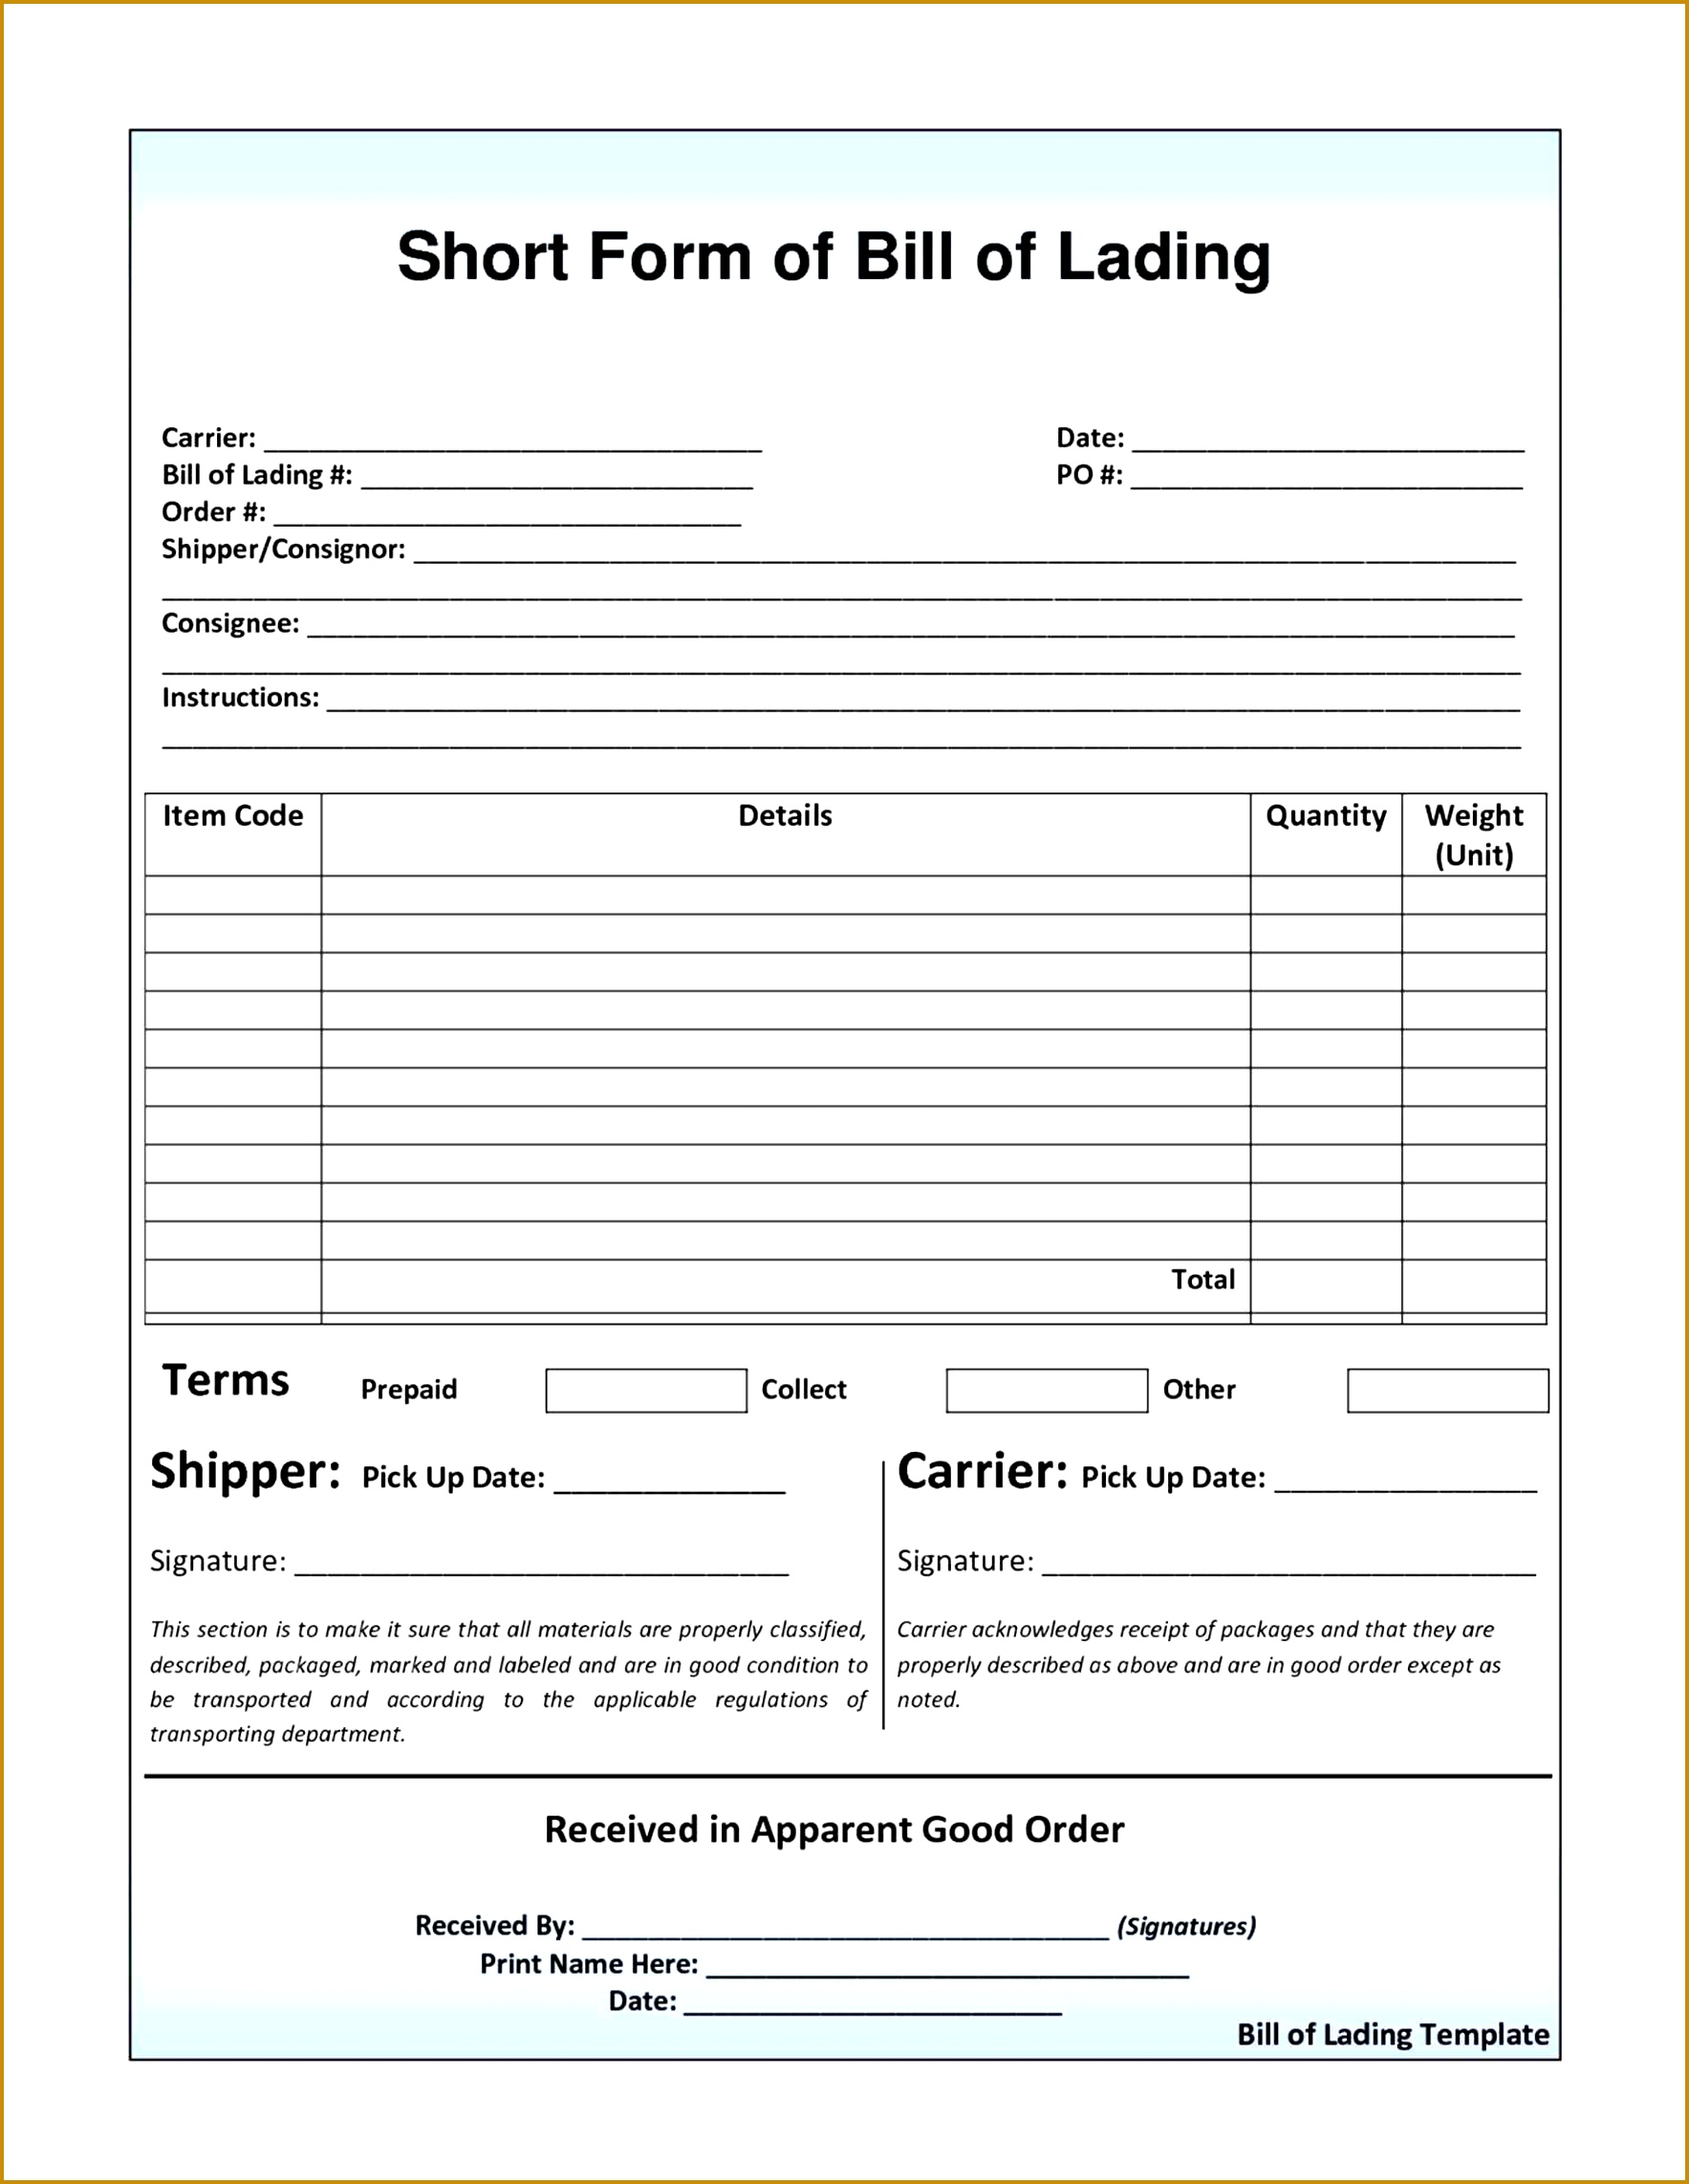 Bill Of Lading Template Word Numbered Raffle Ticket Template Free Short Form  Bill Of Lading Template